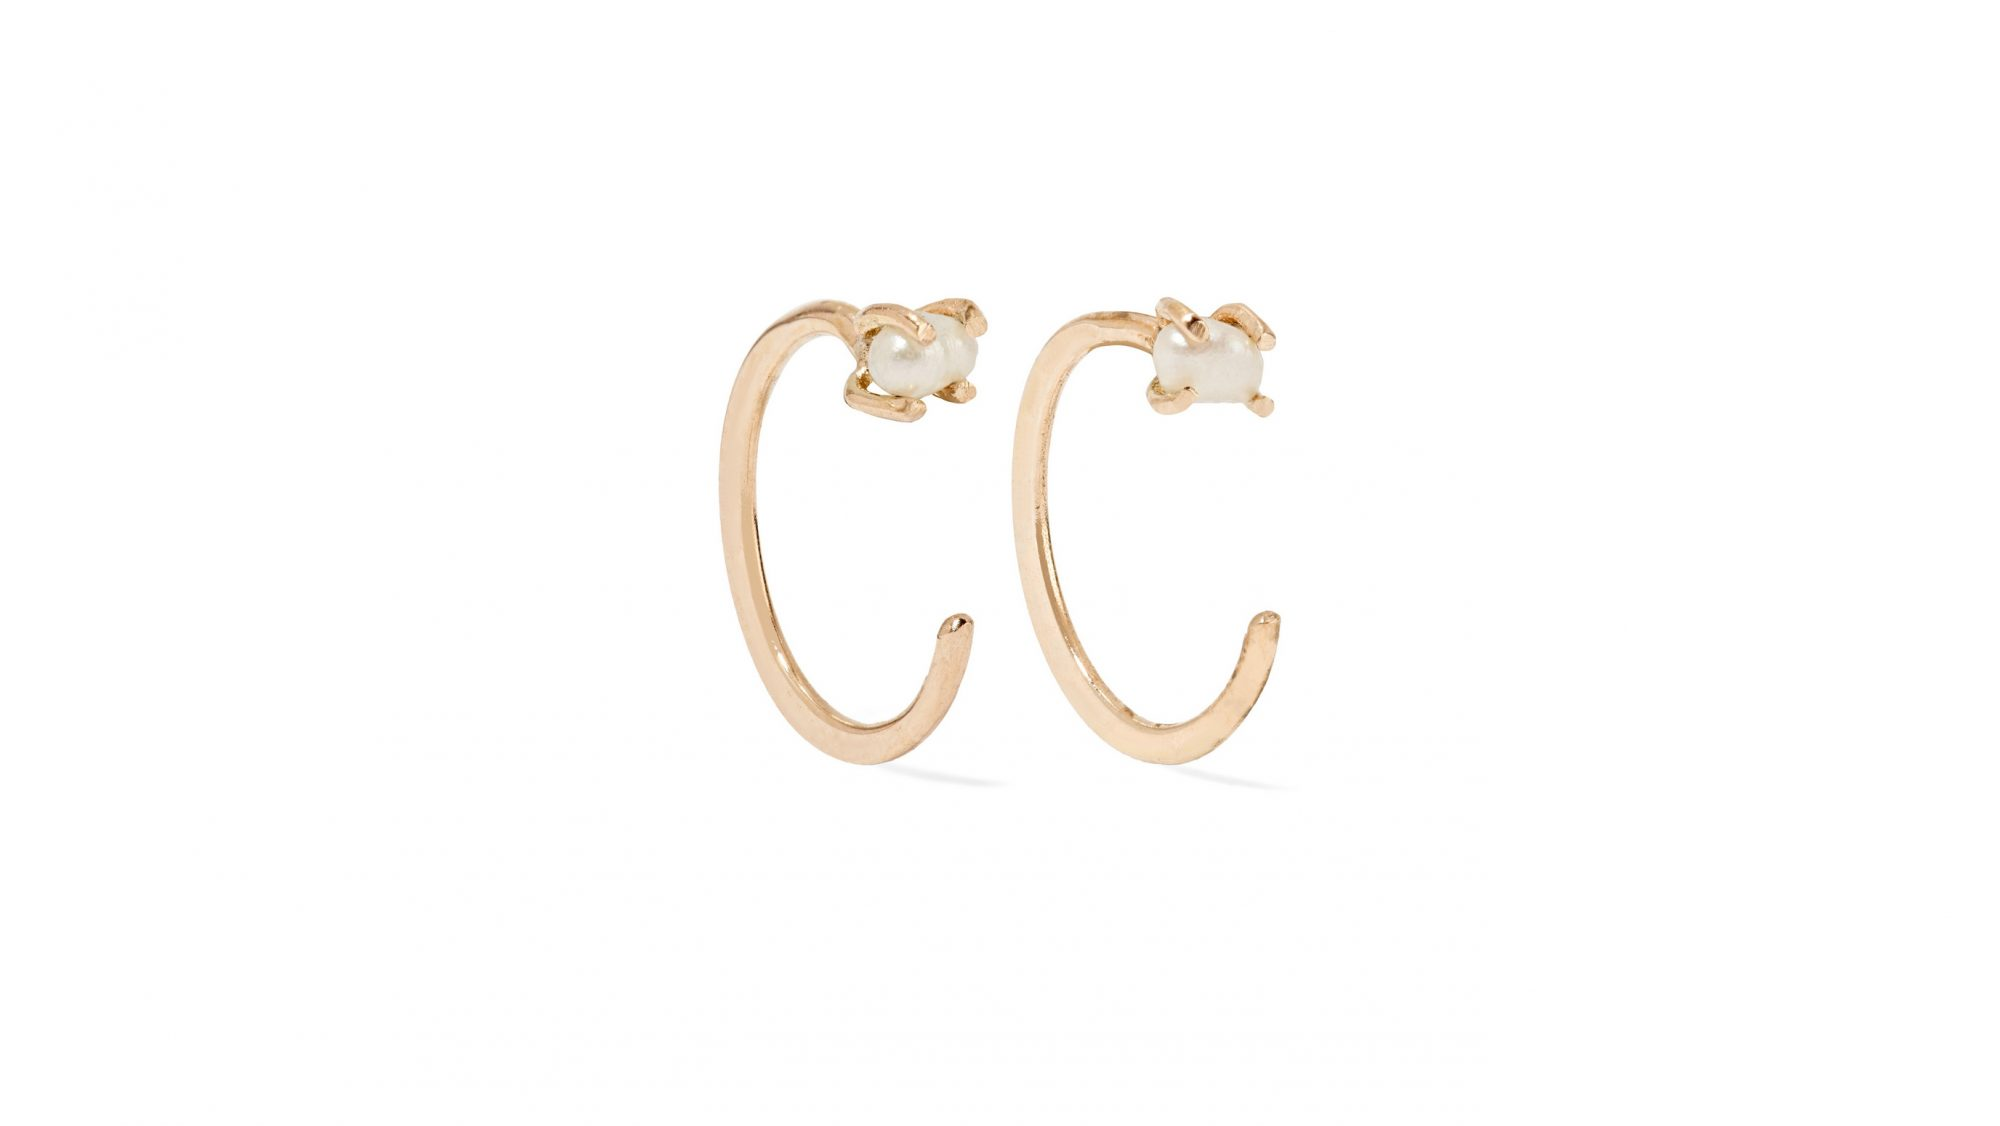 14-Karat Gold Pearl Earrings. Valentines Day-Ideas for Her Jewelry  sc 1 st  Real Simple & 40 Creative Valentineu0027s Day Gift Ideas for Her